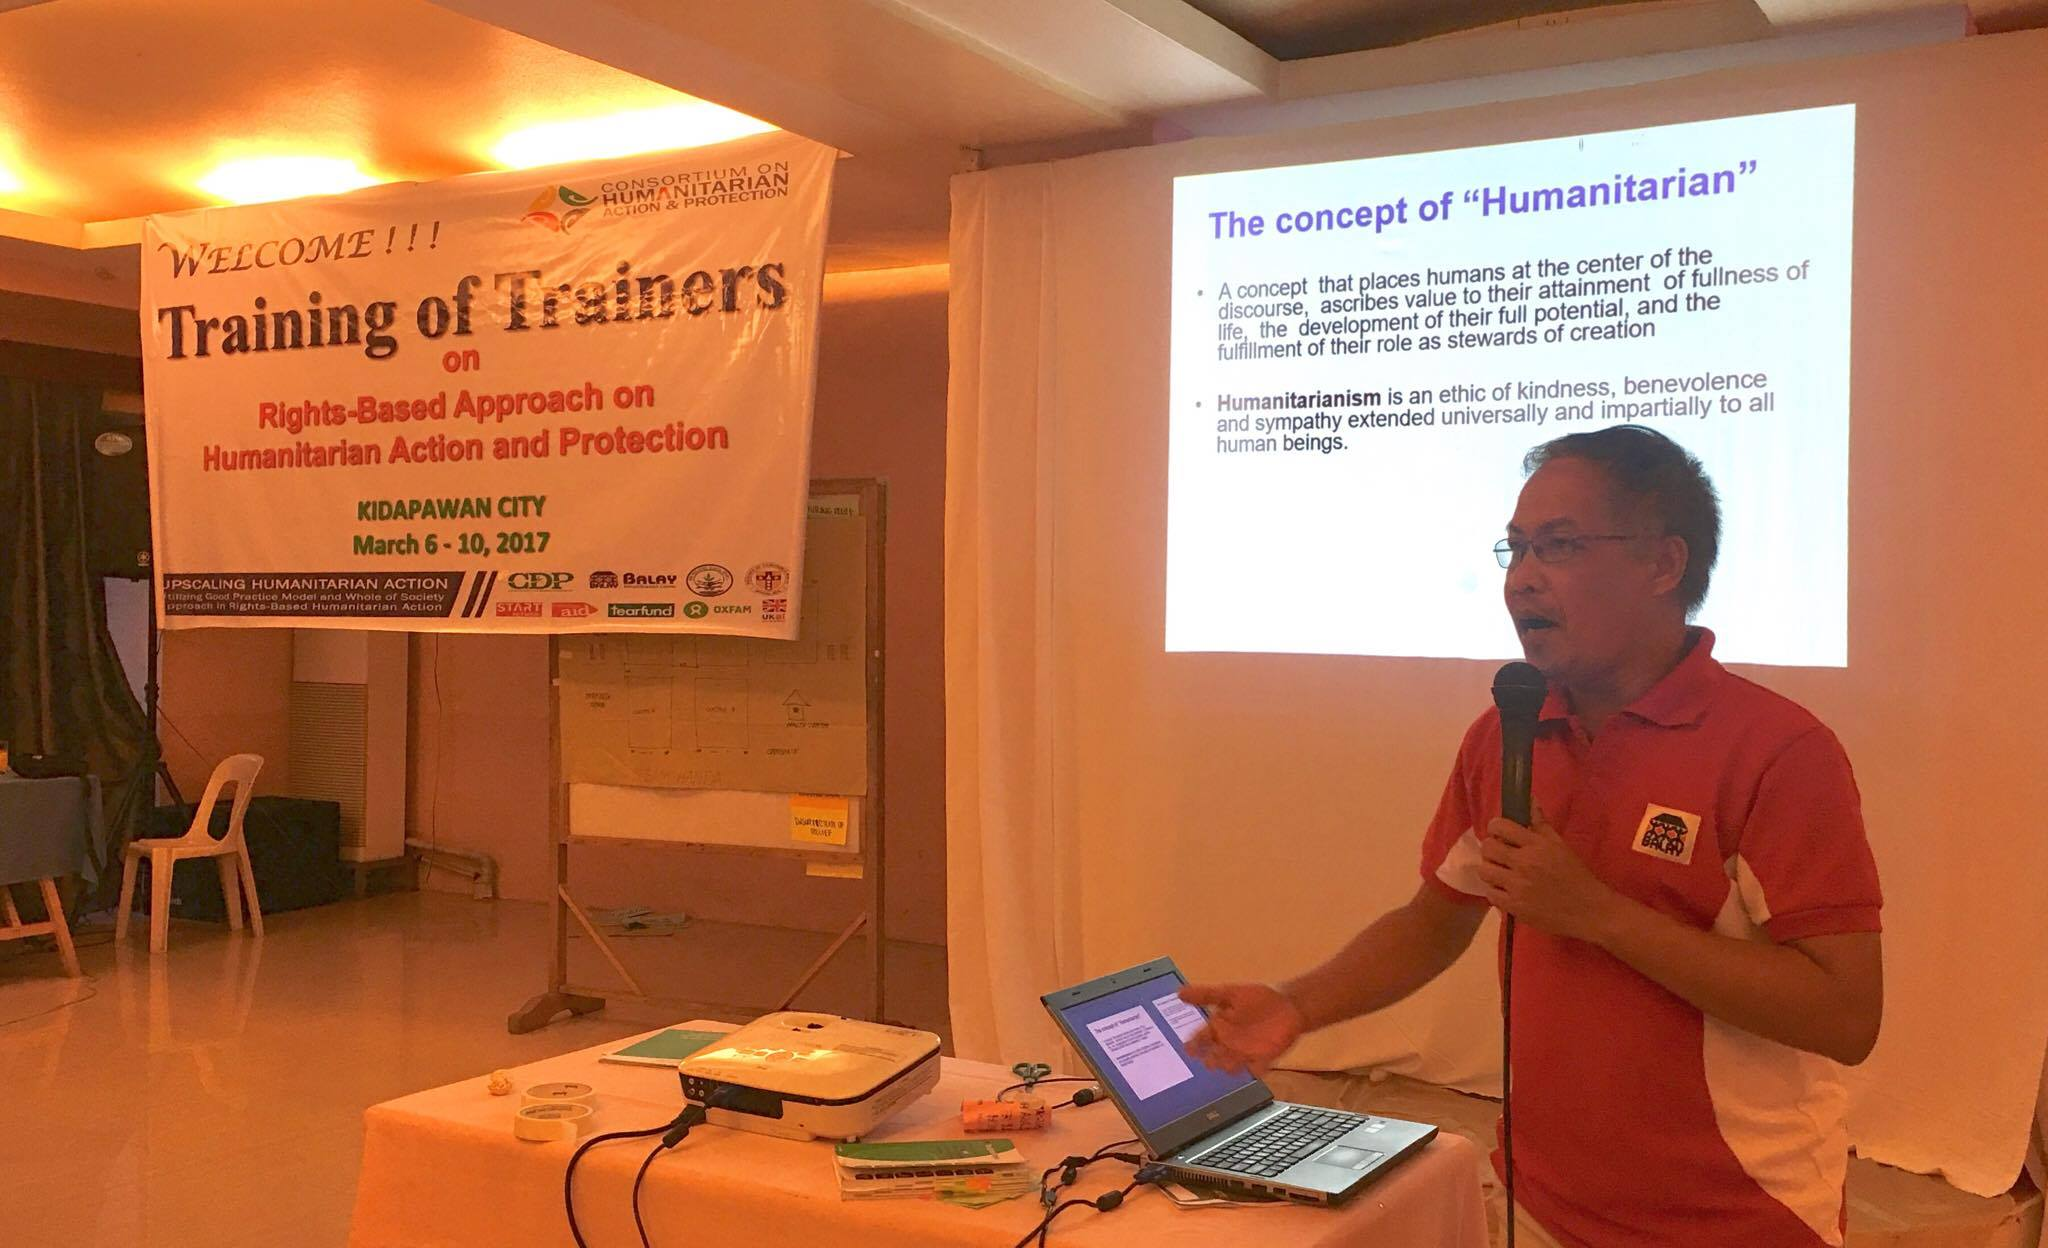 """Training of Trainers on Rights-based Approach on Humanitarian Action and Protection"" in Kidapawan City"